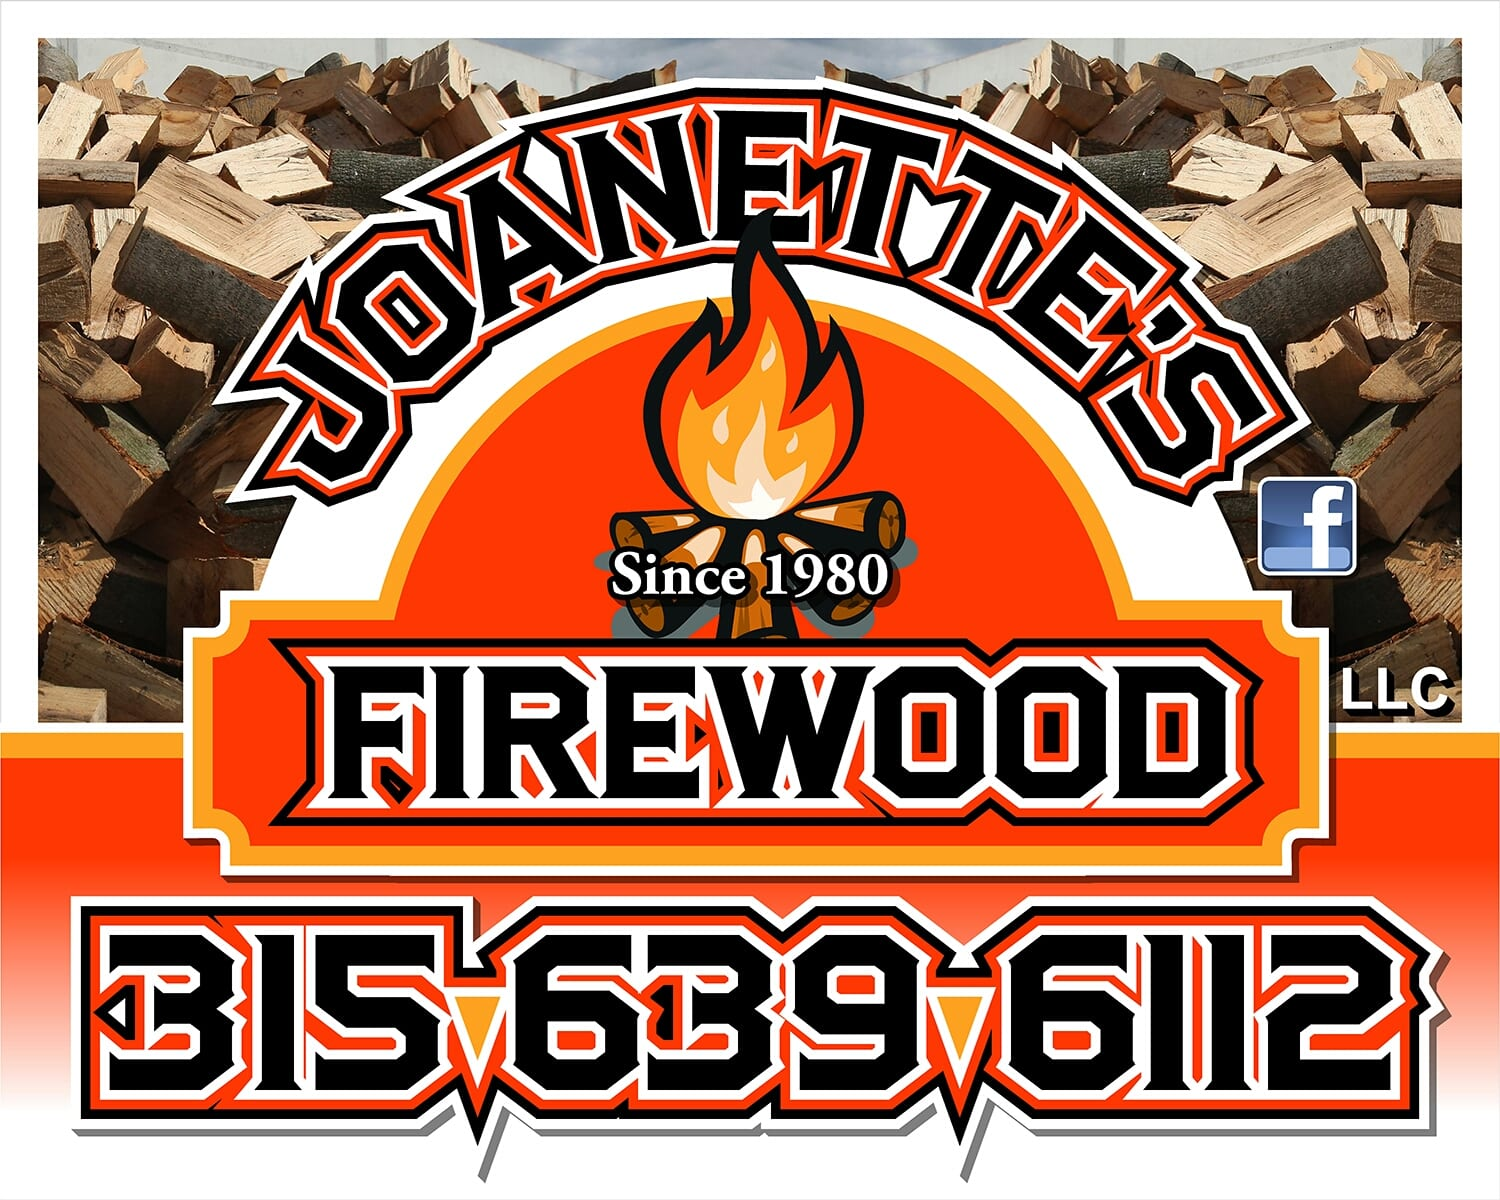 FIREWOOD - 4 FACE CORDS <br/> Donated by: JOANETTE'S FIREWOOD, LLC <br/> Valued at: $272